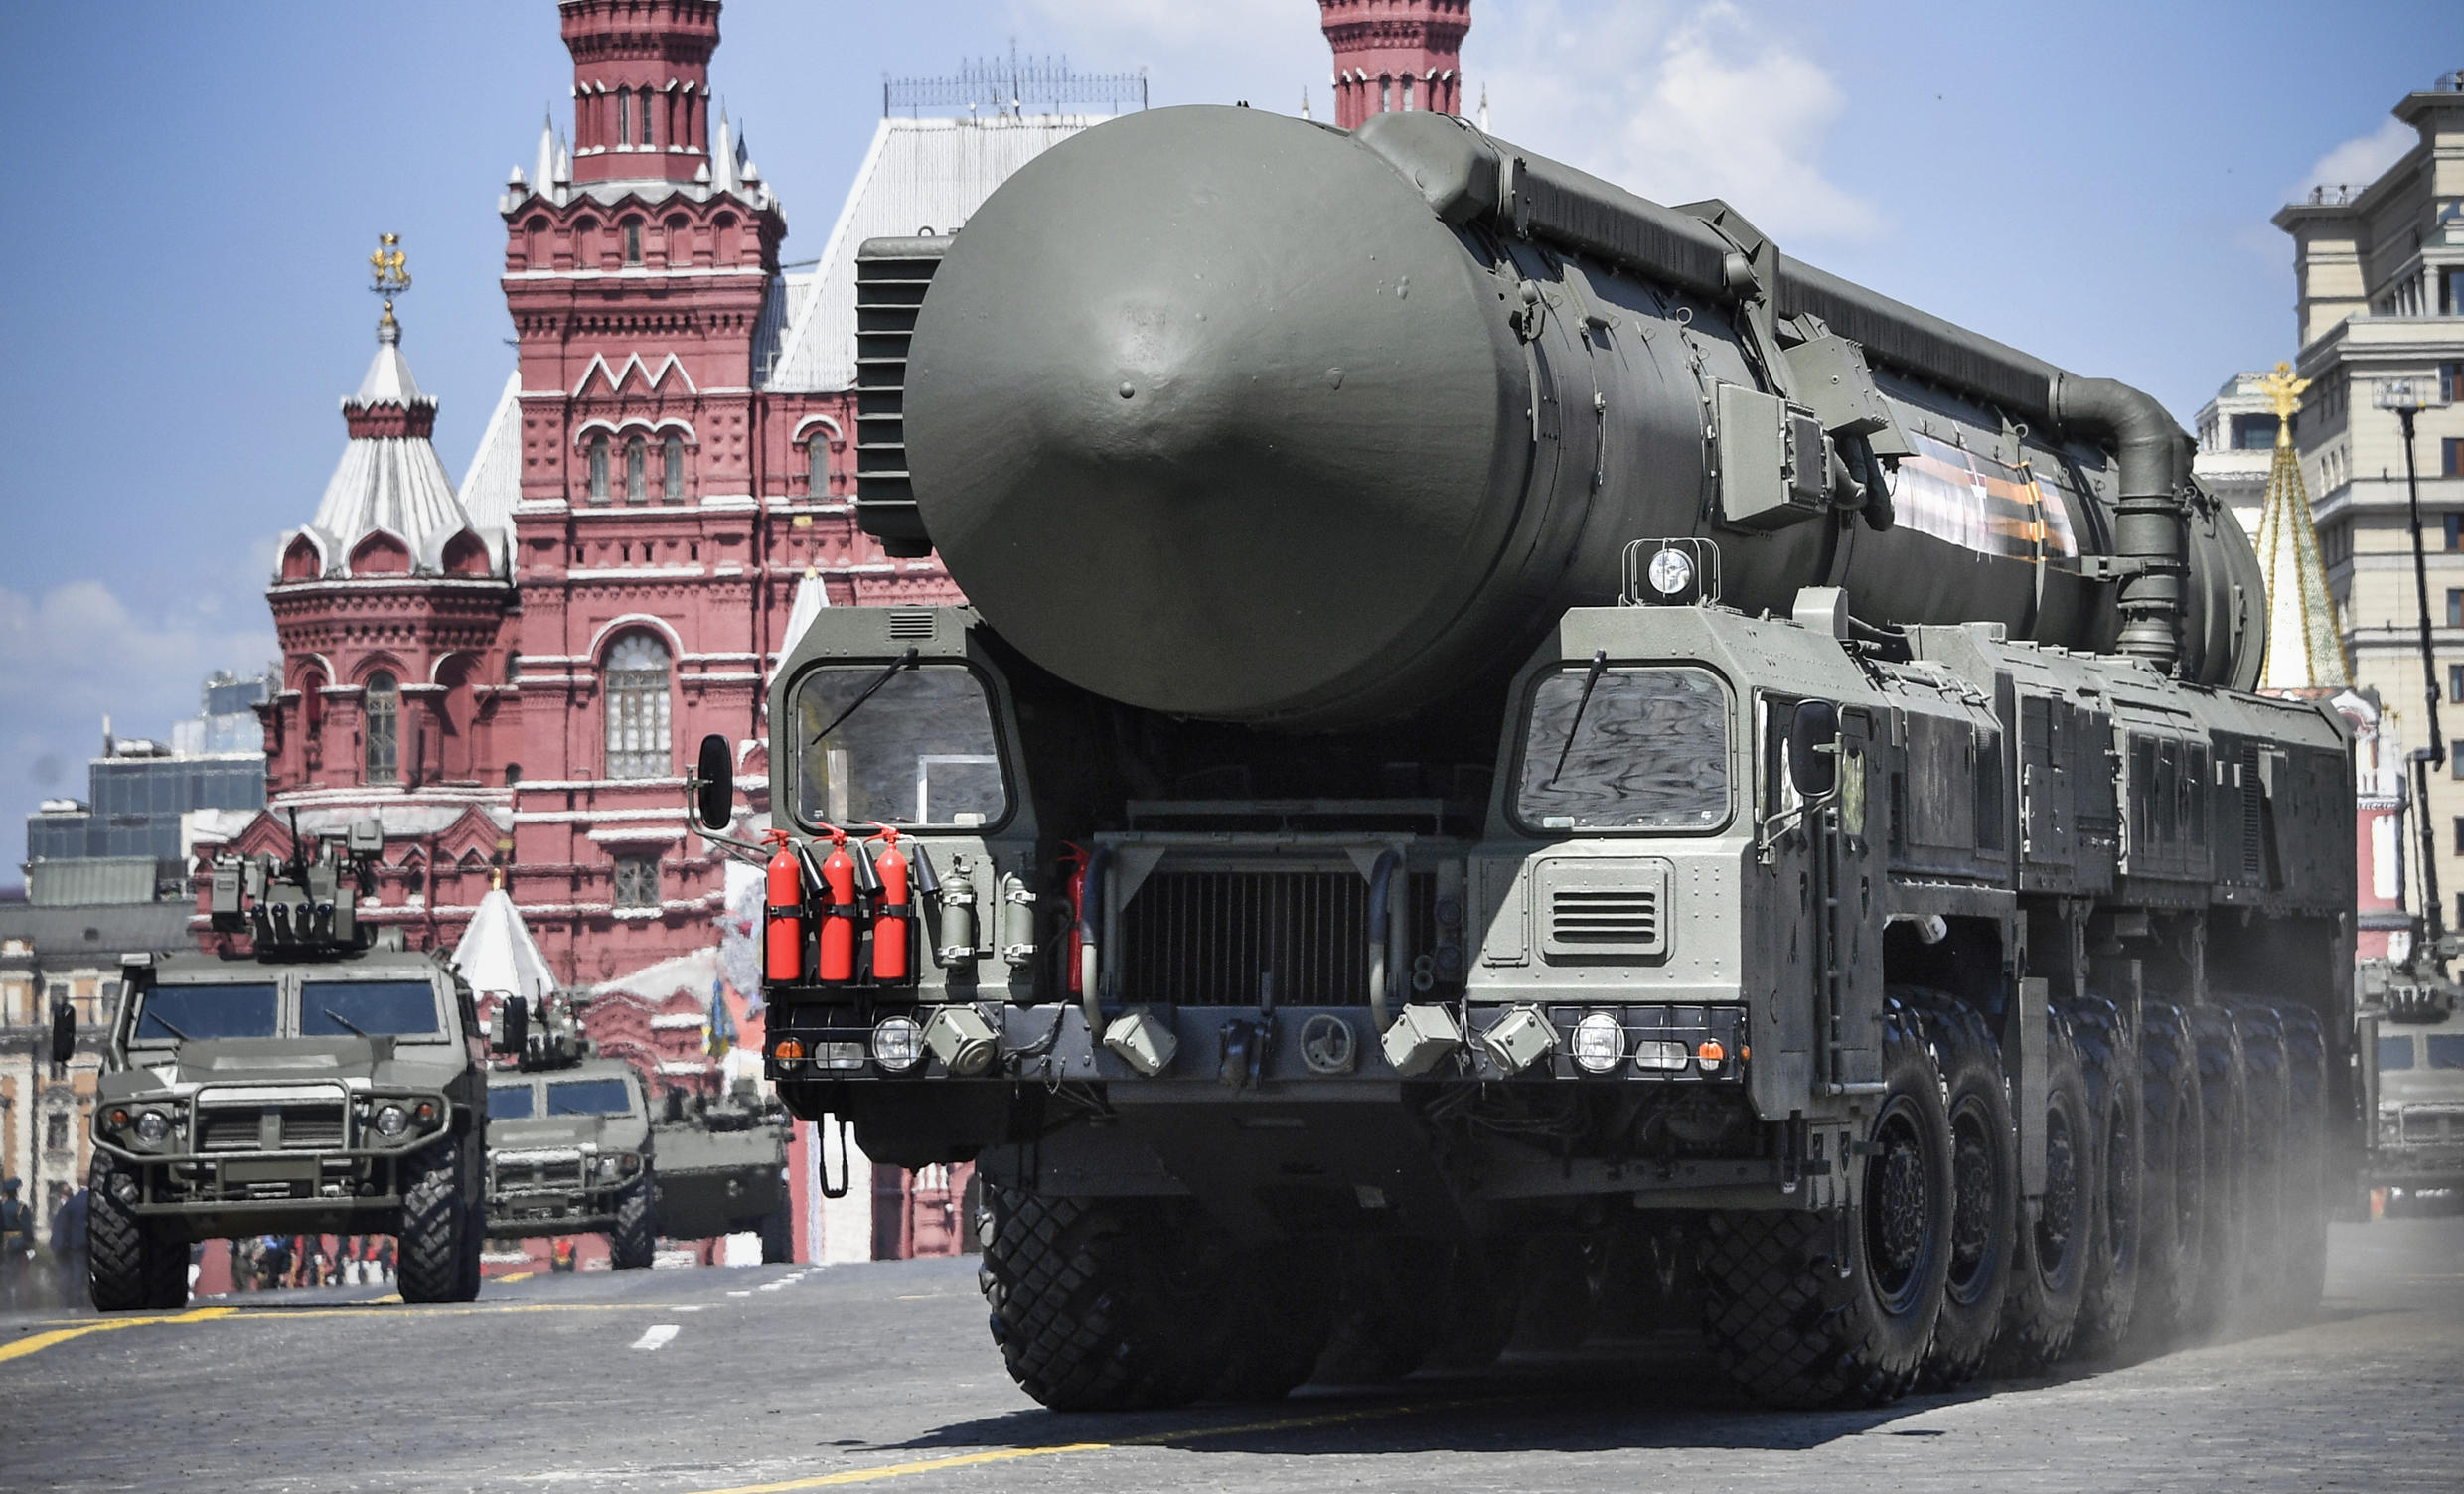 Russia, which is negotiating with Washington on the New START nuclear treaty, parades a Yars RS-24 intercontinental ballistic missile system through Red Square during a parade to mark the 75th anniversary of the victory over Nazi Germany in June 2020